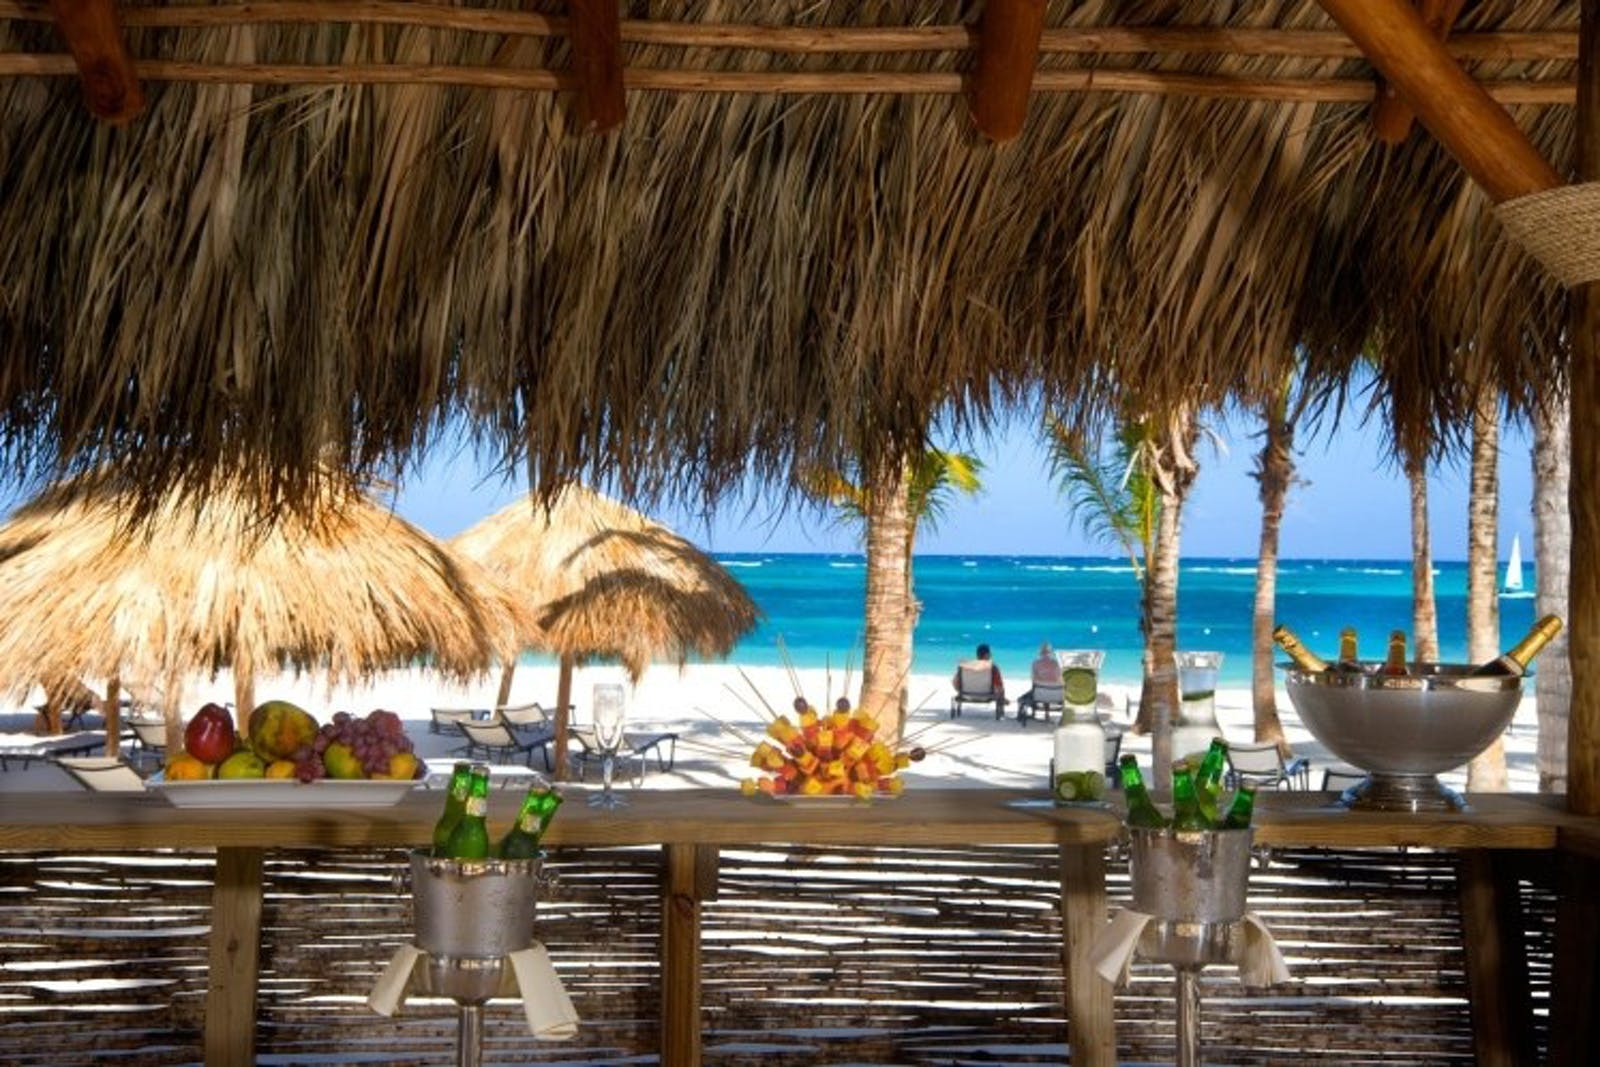 Beach Bar at Secrets Royal Beach Punta Cana, Dominican Republic